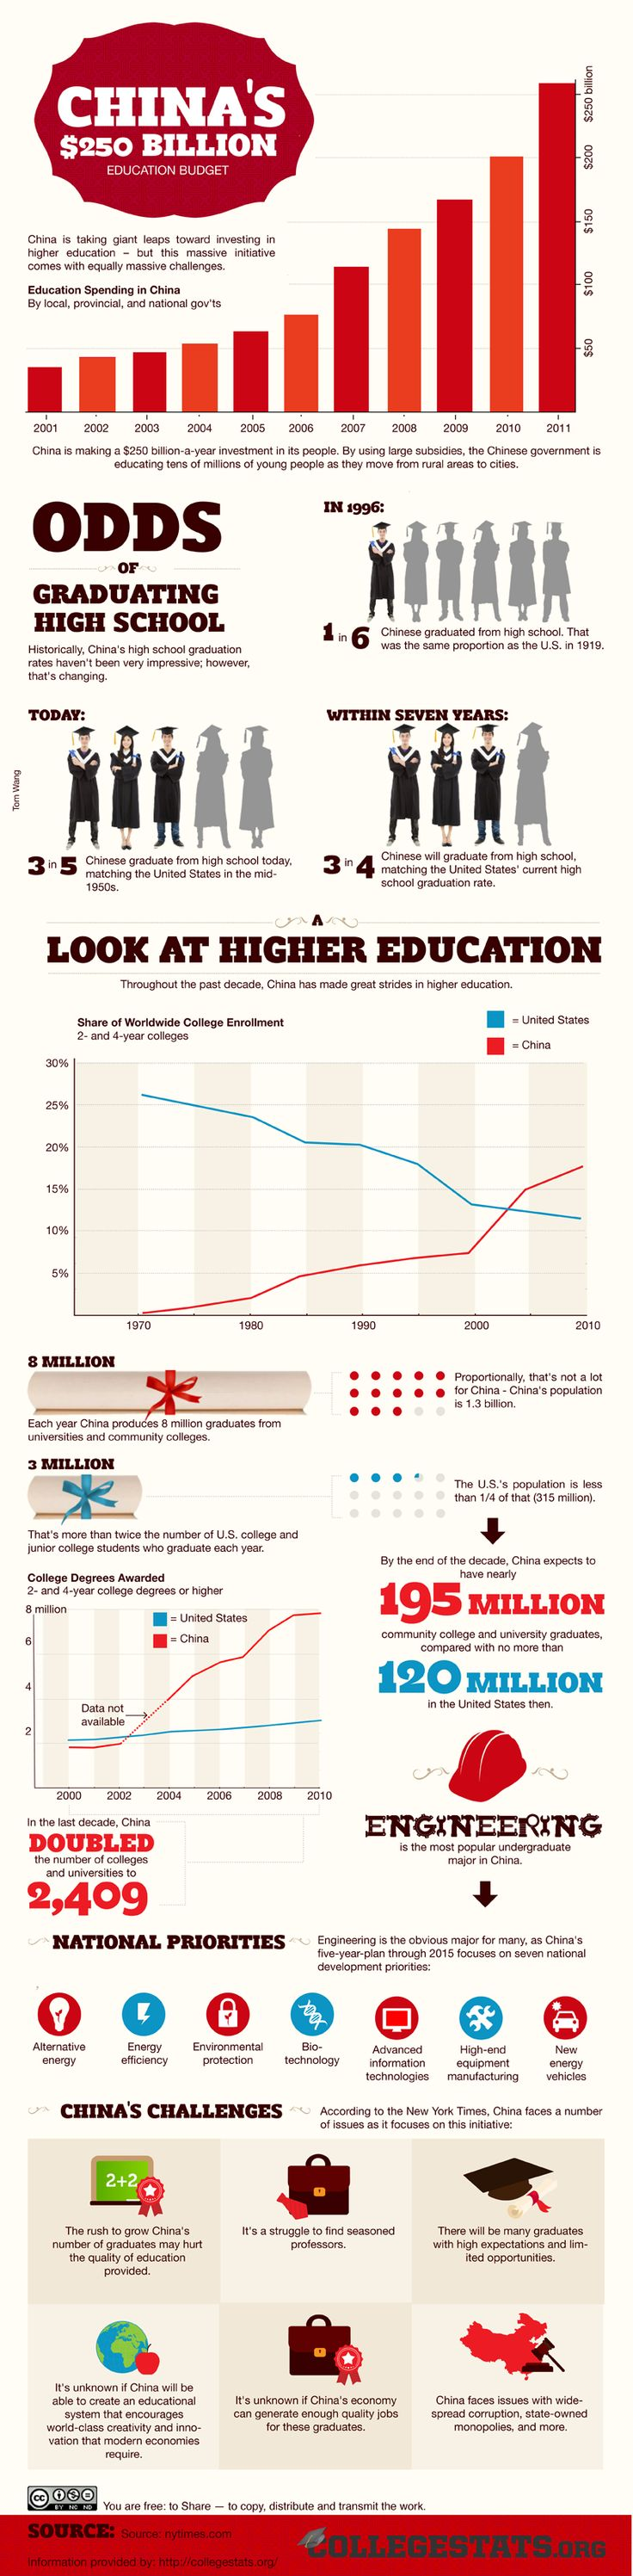 80 best china infographics images on Pinterest